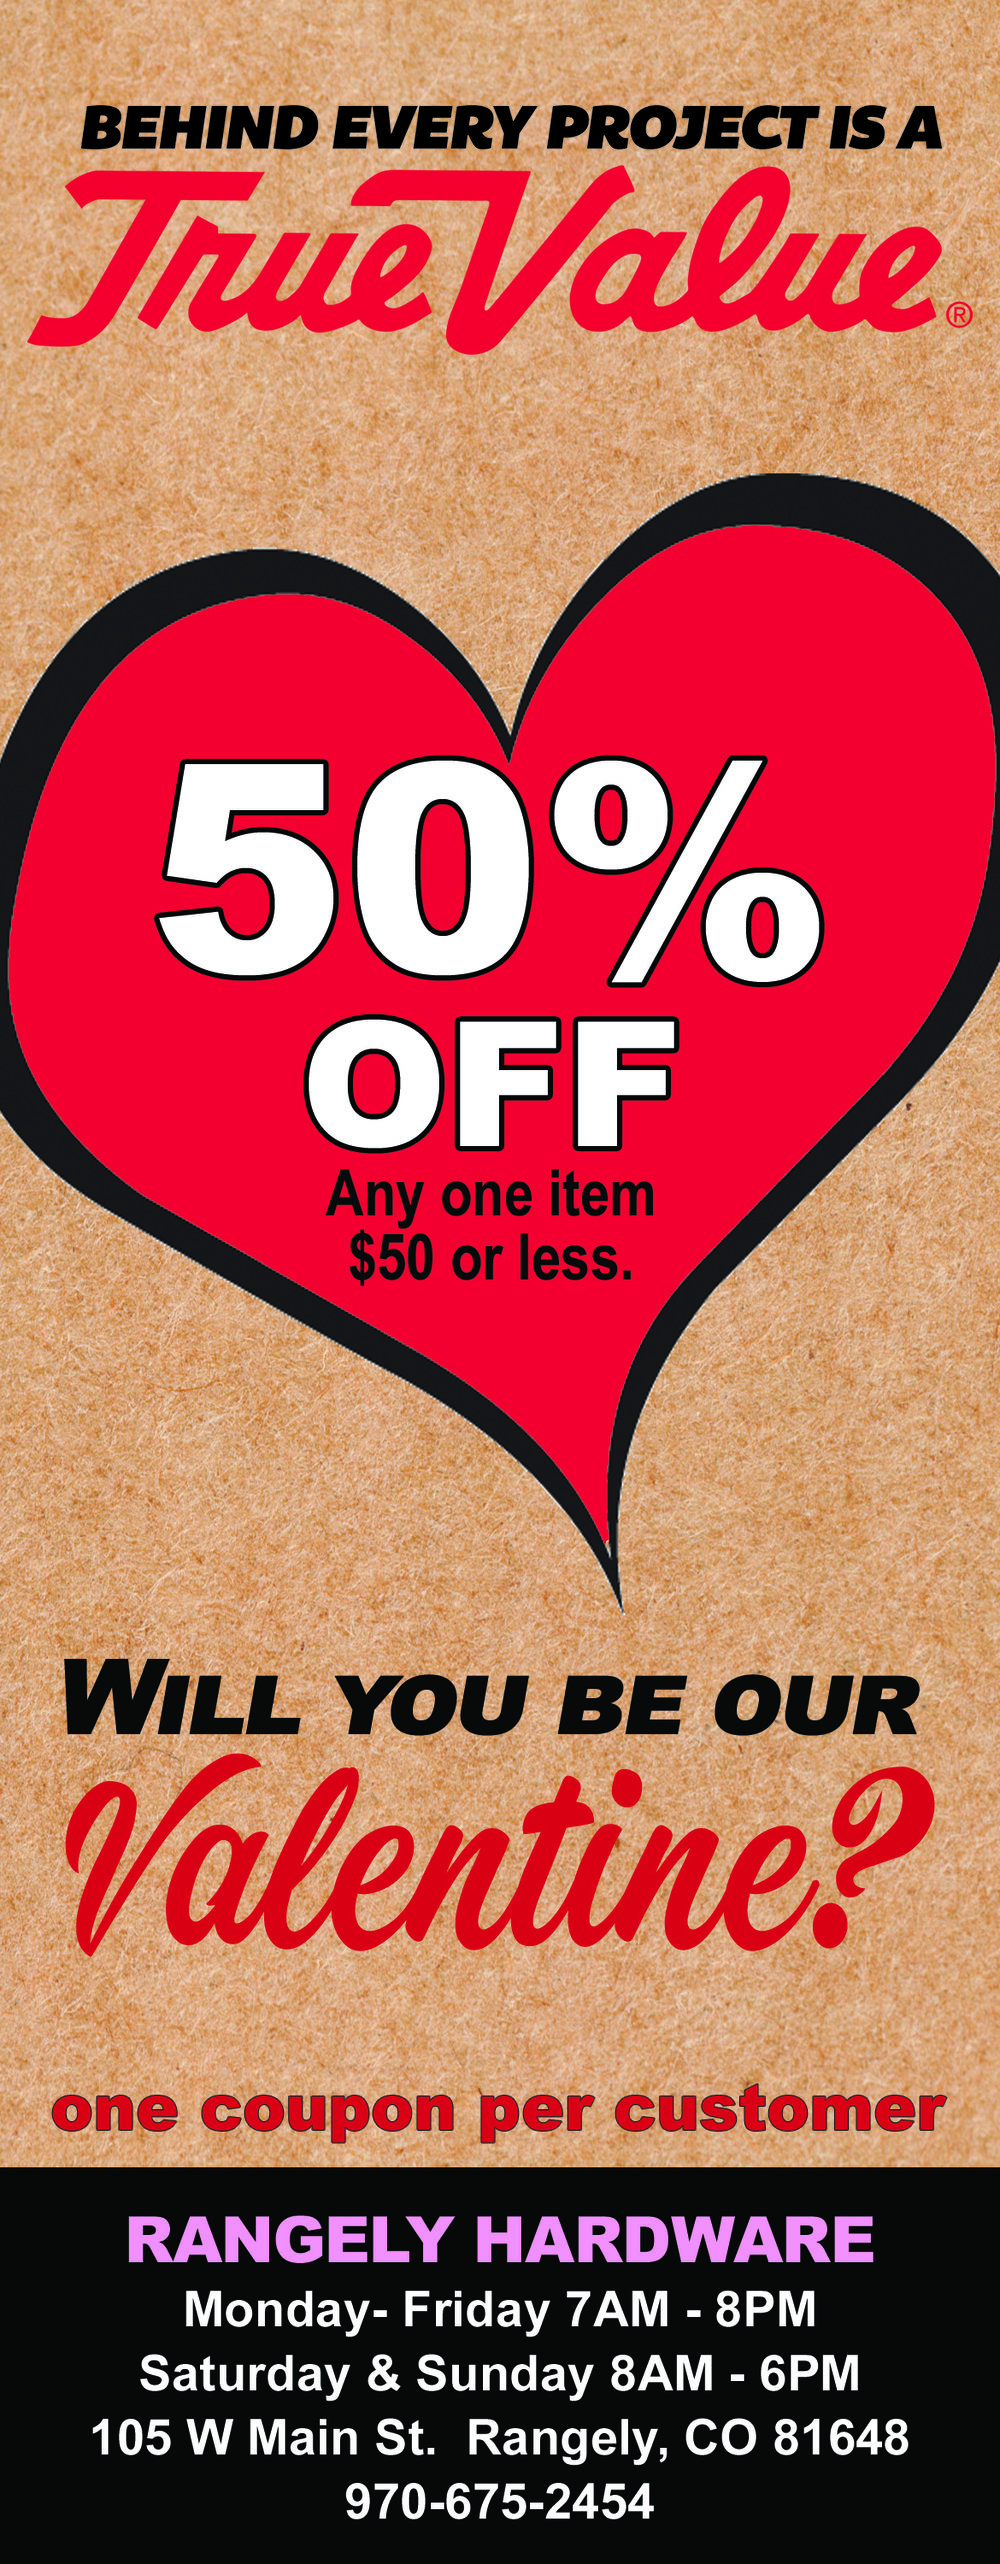 For that DIY valentine in your life, you don't want to miss out on this deal!